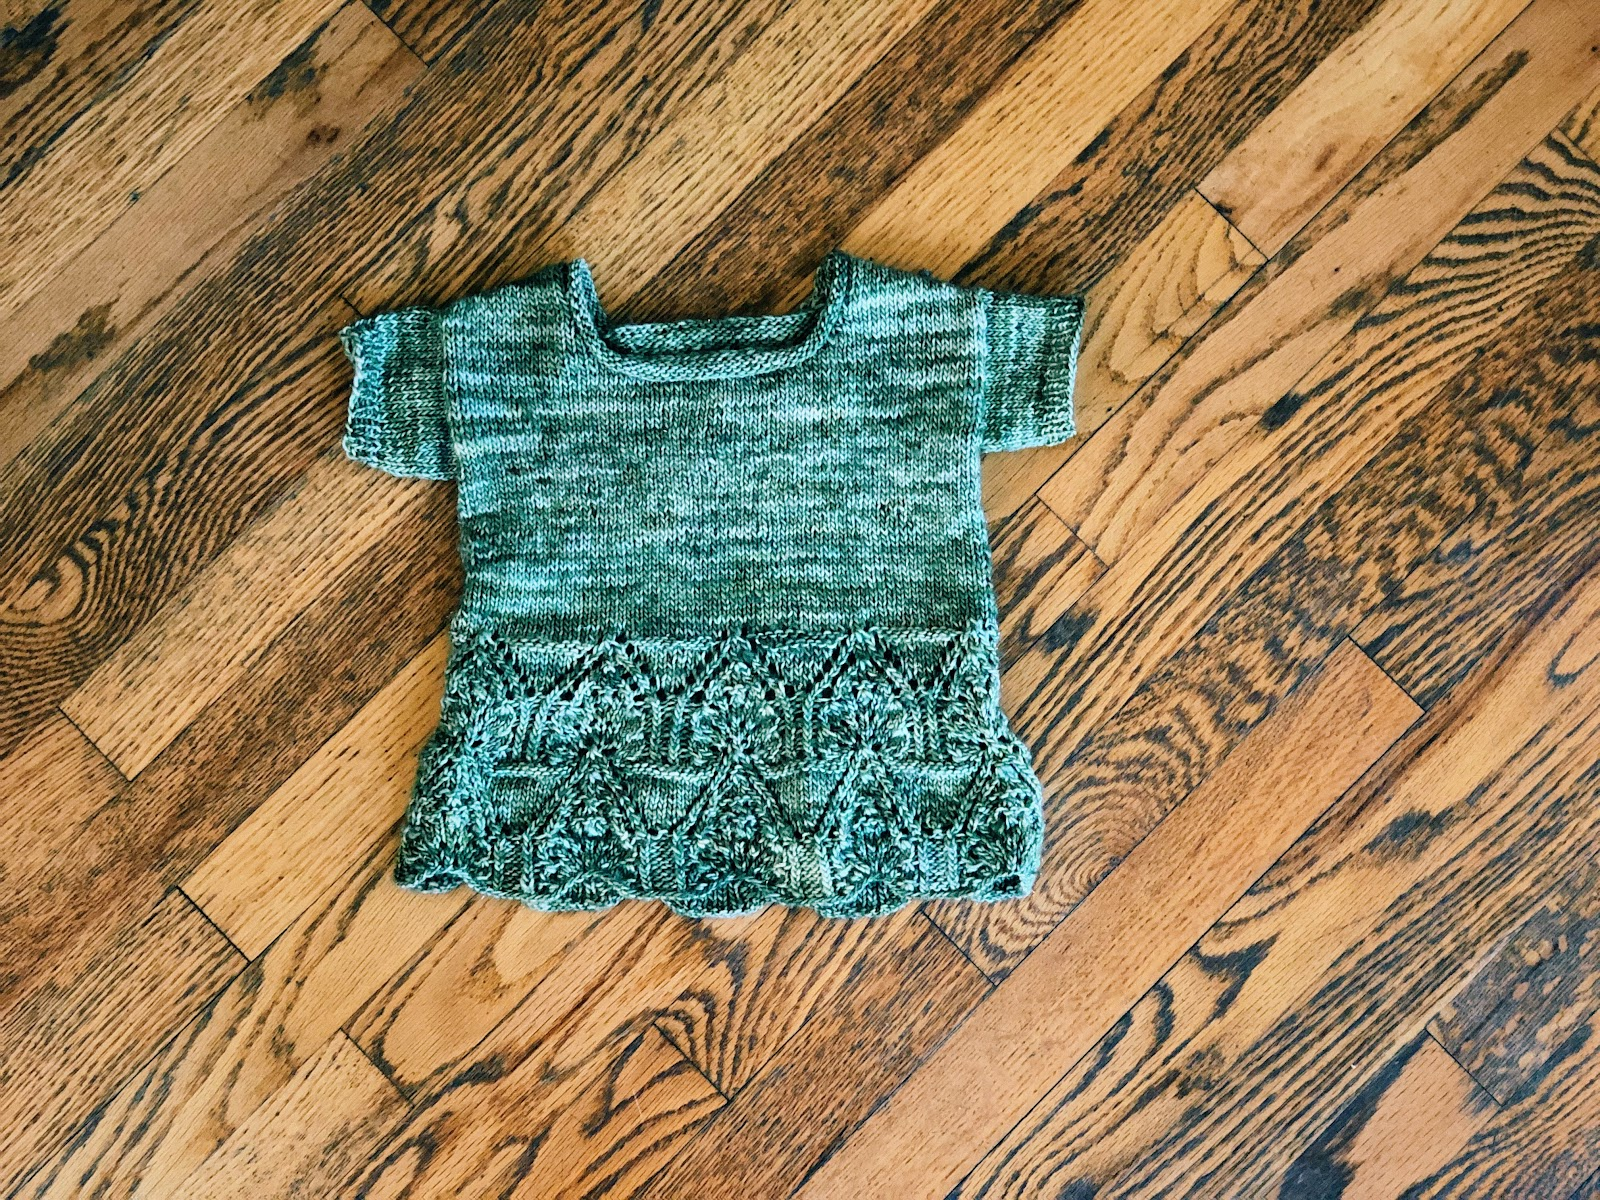 A small, blue, knitted shirt with a diamond knitted pattern along the bottom lays flat against a hard wood floor.